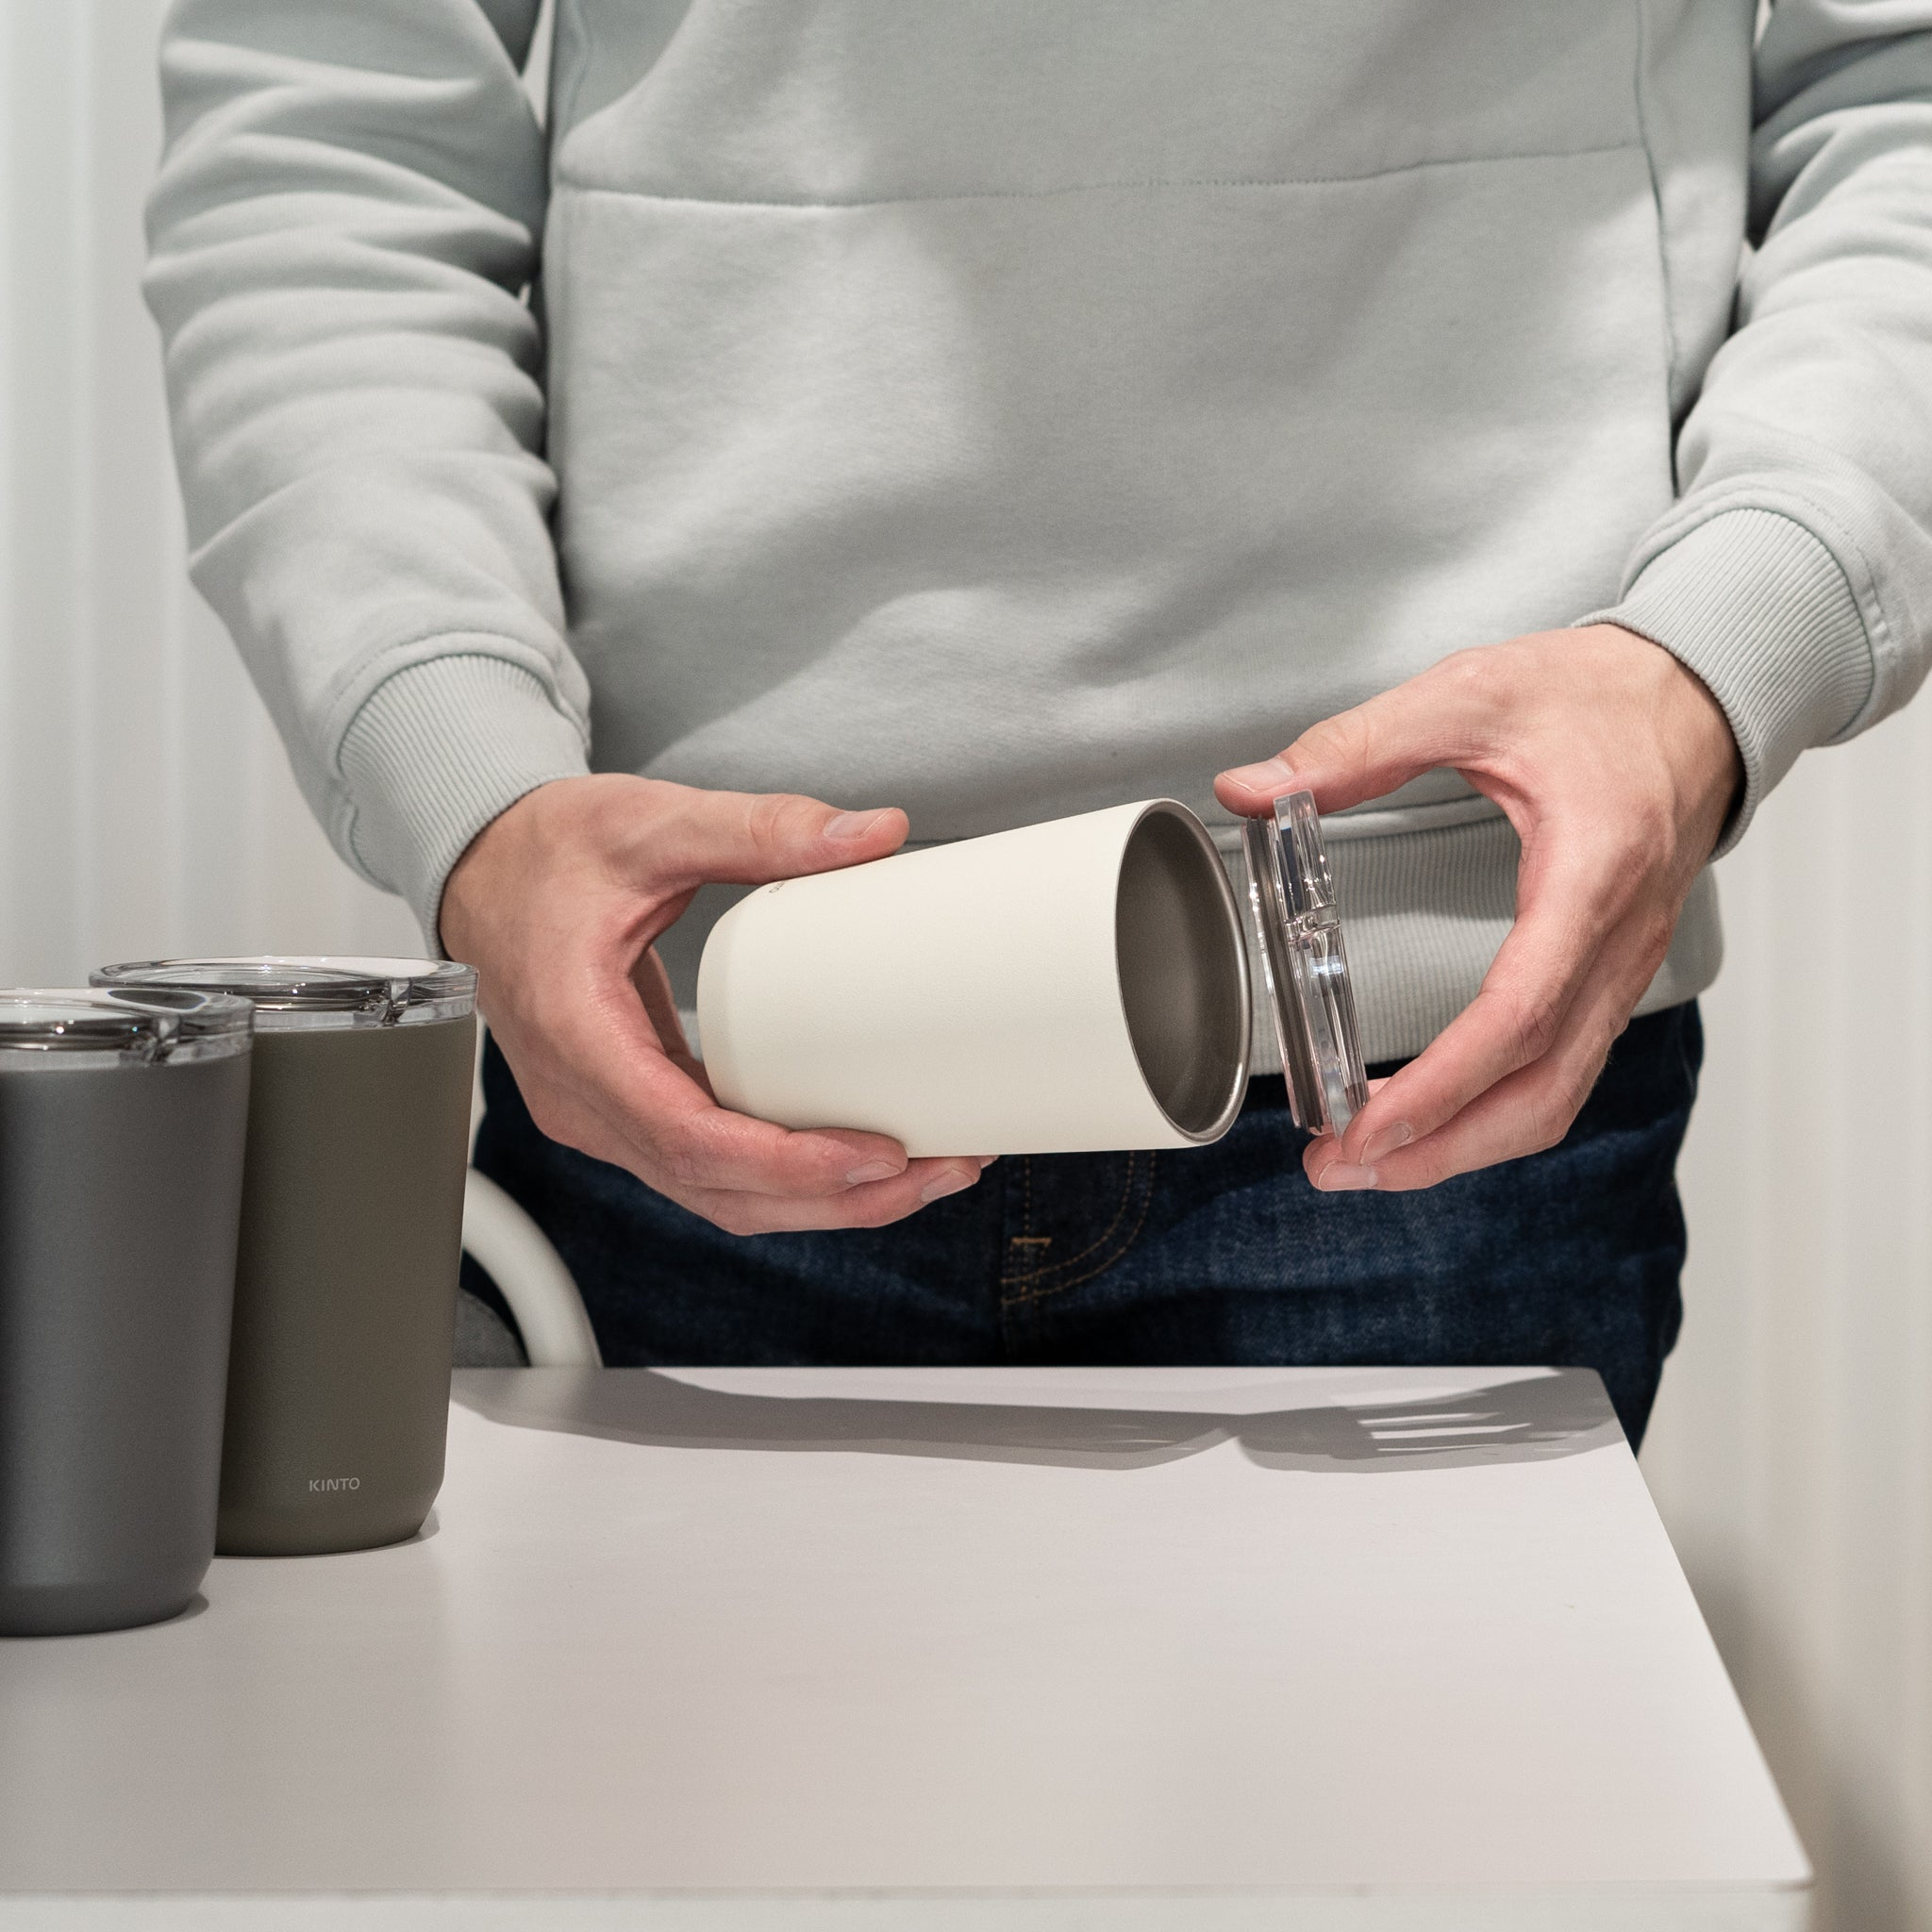 Designed in Japan, Kinto's To Go Tumbler fits easily in your hand and holds 12 ounces.